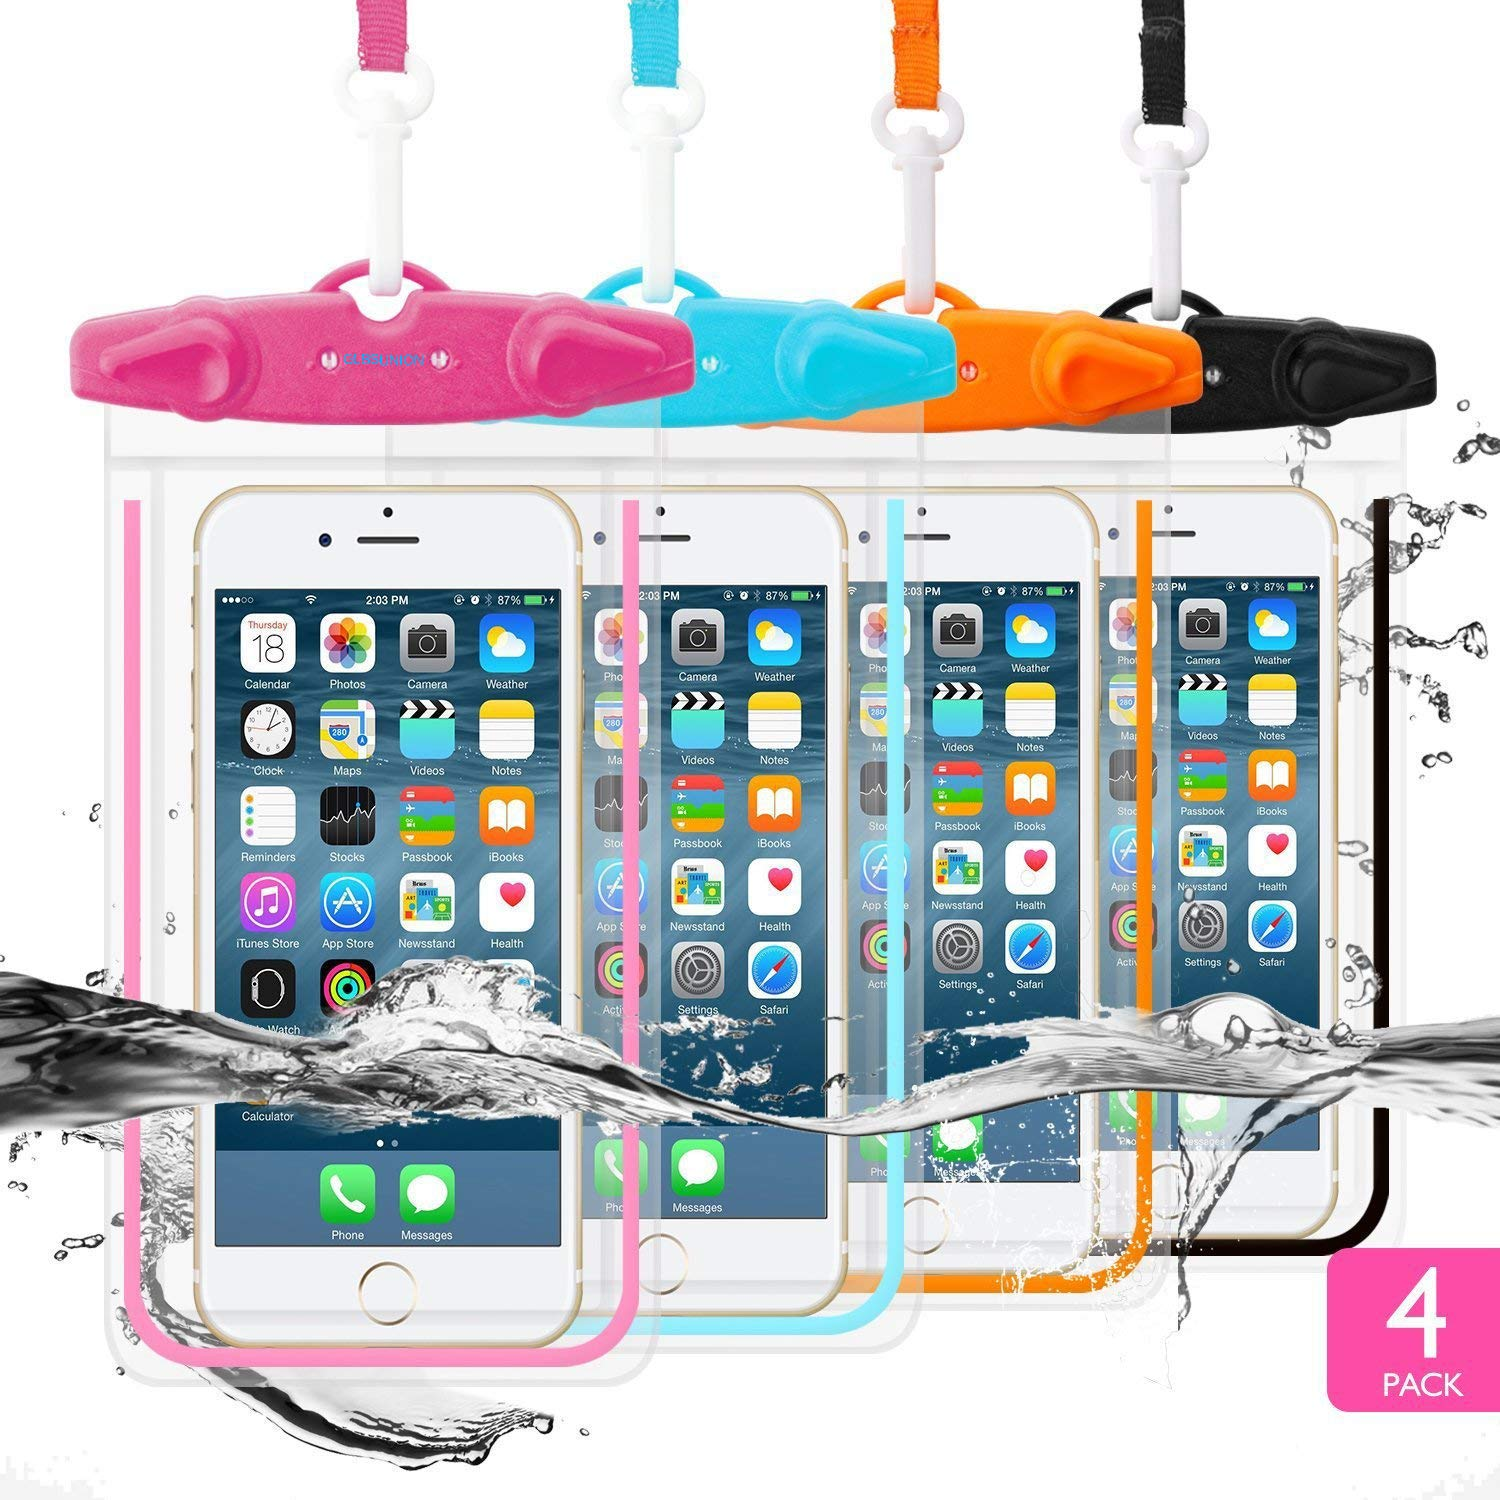 GLBSUNION Universal Waterproof Case, IPX8 Cell Phone Dry Bag/Pouch Compatible for iPhone Xs Max/XR/X/8/8P/7/7P Galaxy S8/S7 LG up to 6.5'', Protective Pouch for Pool Beach Kayaking Travel Bath (4-Pack)